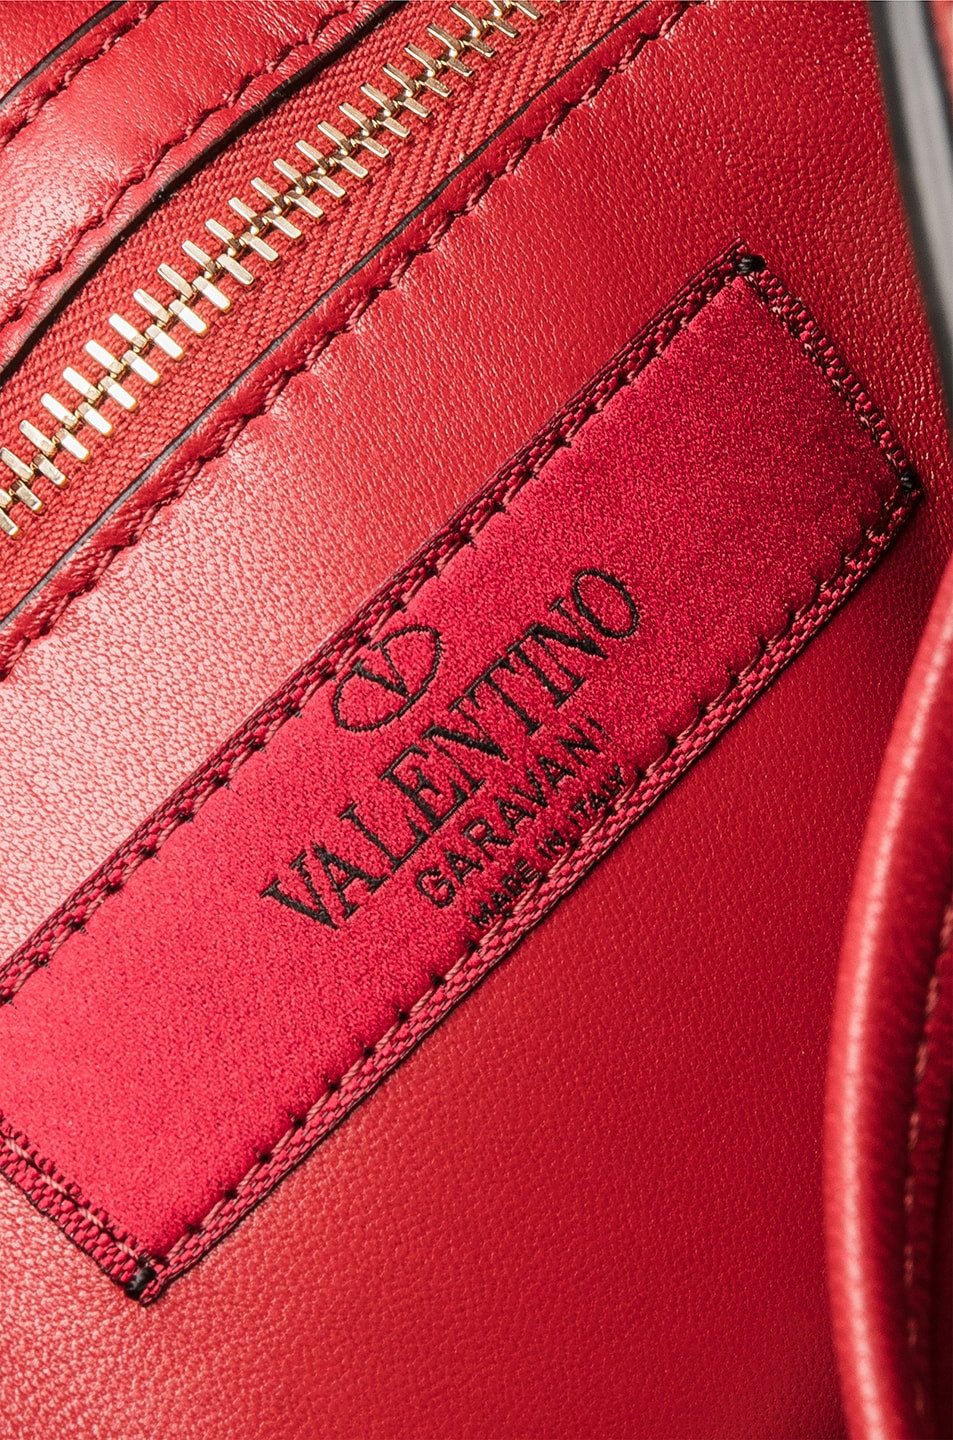 Image 7 of Valentino Rockstud Spike Medium Shoulder Bag in Red